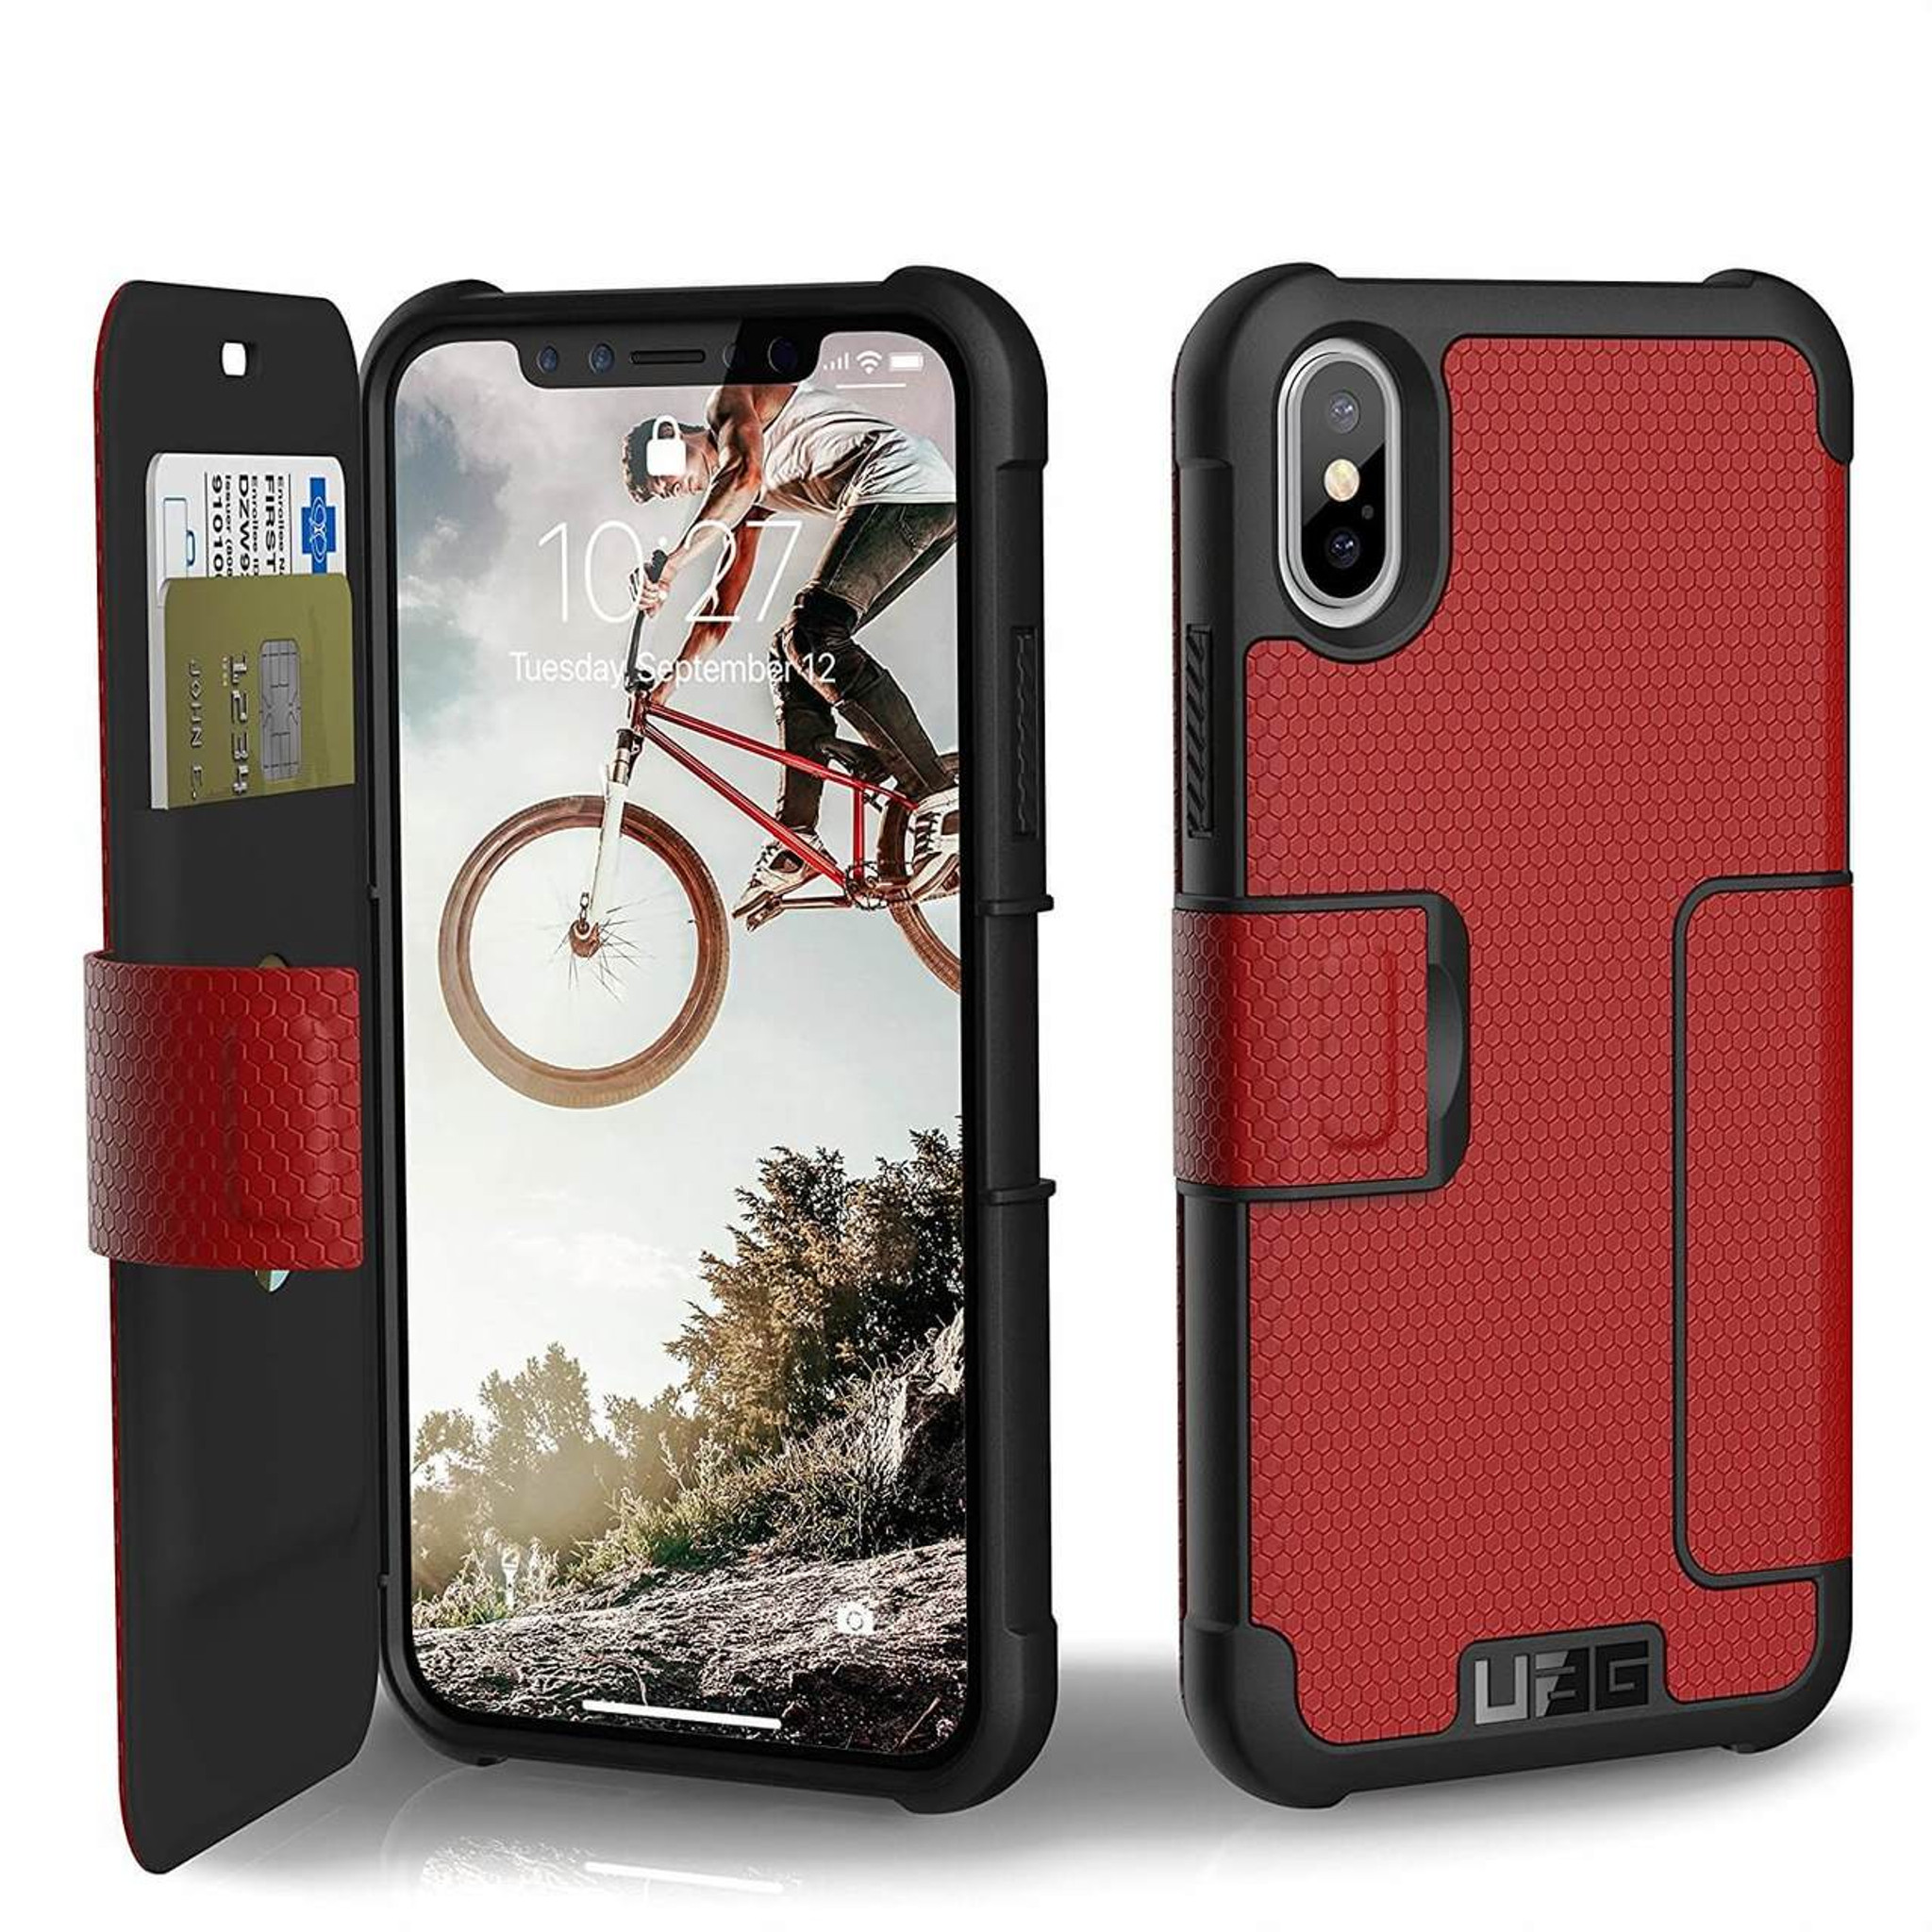 buy online 7e31d 13a11 UAG Metropolis iPhone X Case - Magma